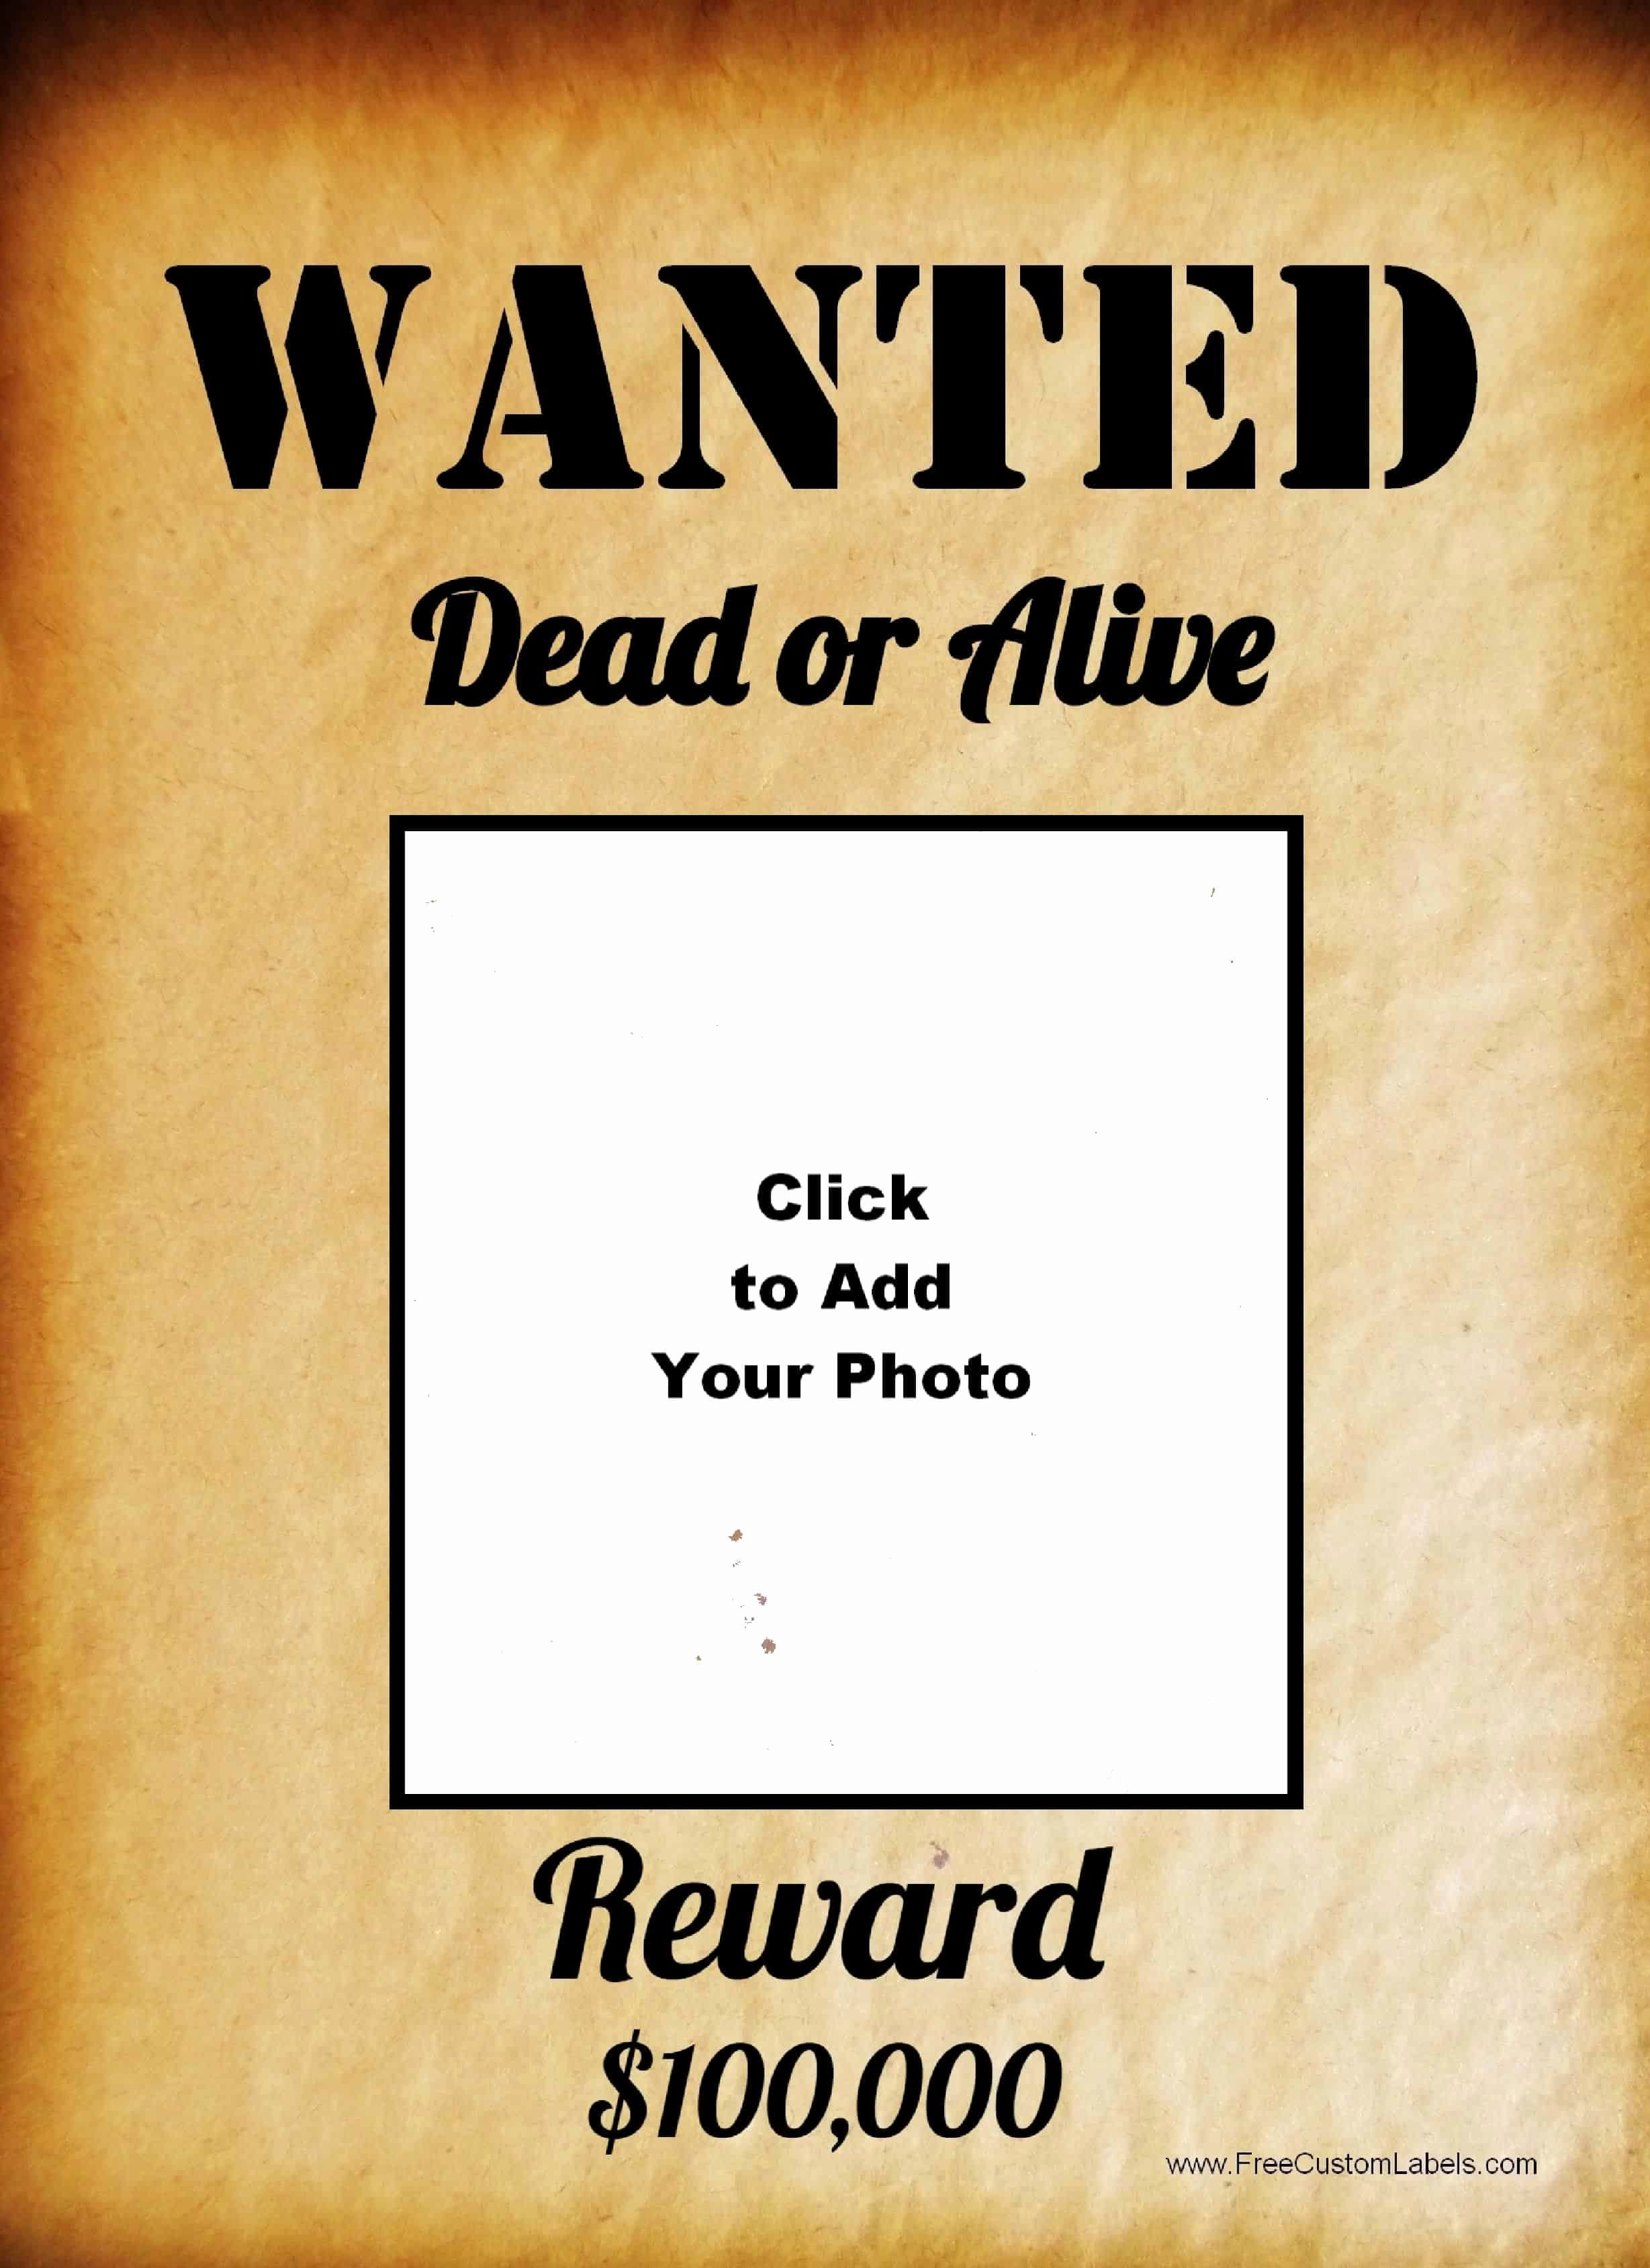 Wanted Poster Template Pdf Inspirational Free Wanted Poster Maker